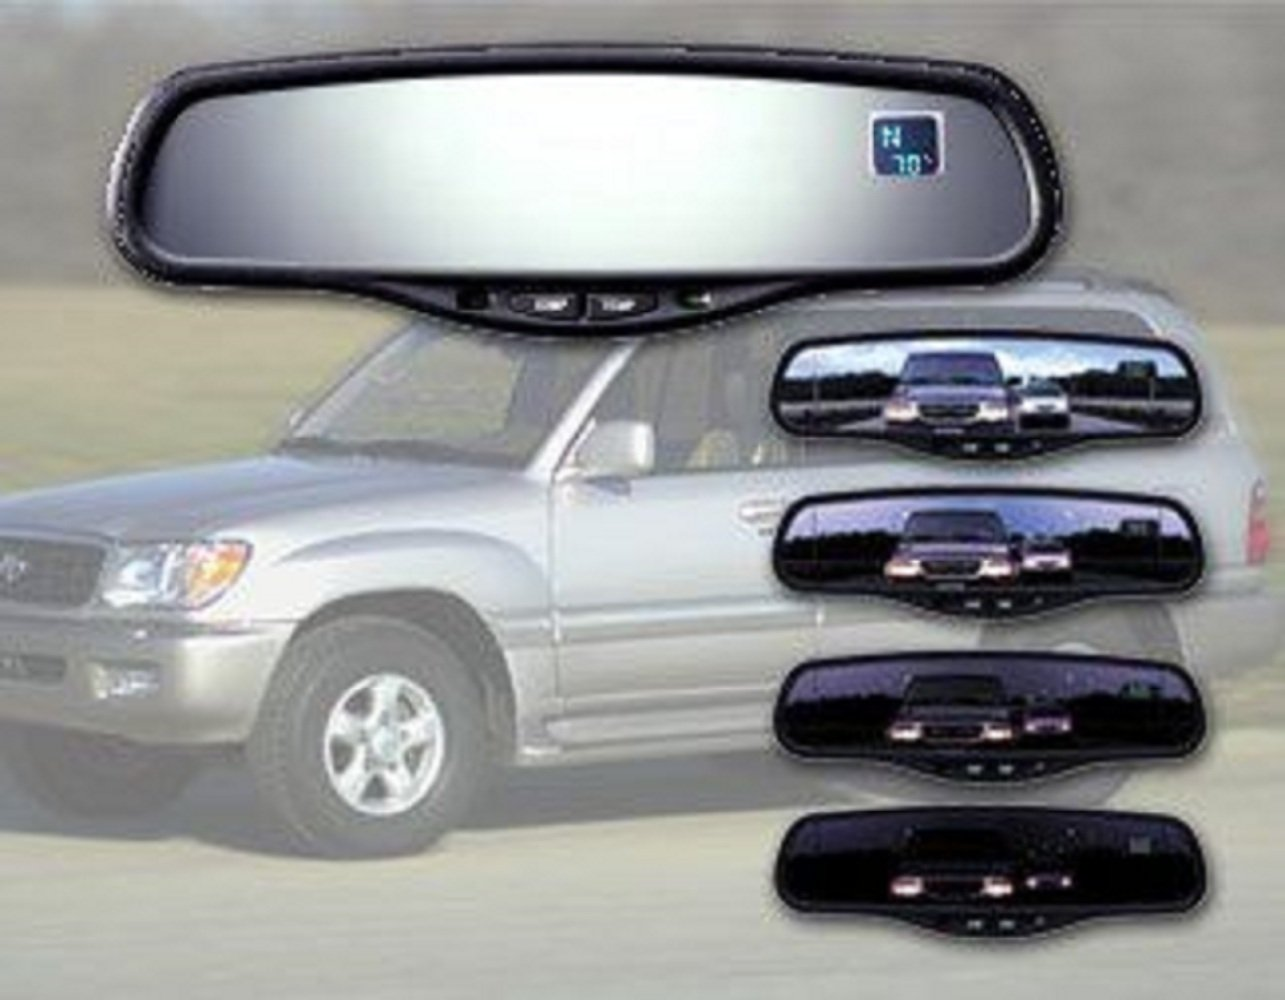 Audi Gentex GENK45A-VPK Auto-Dimming Rear View Mirror system with Compass and Homelink for Volkswagen